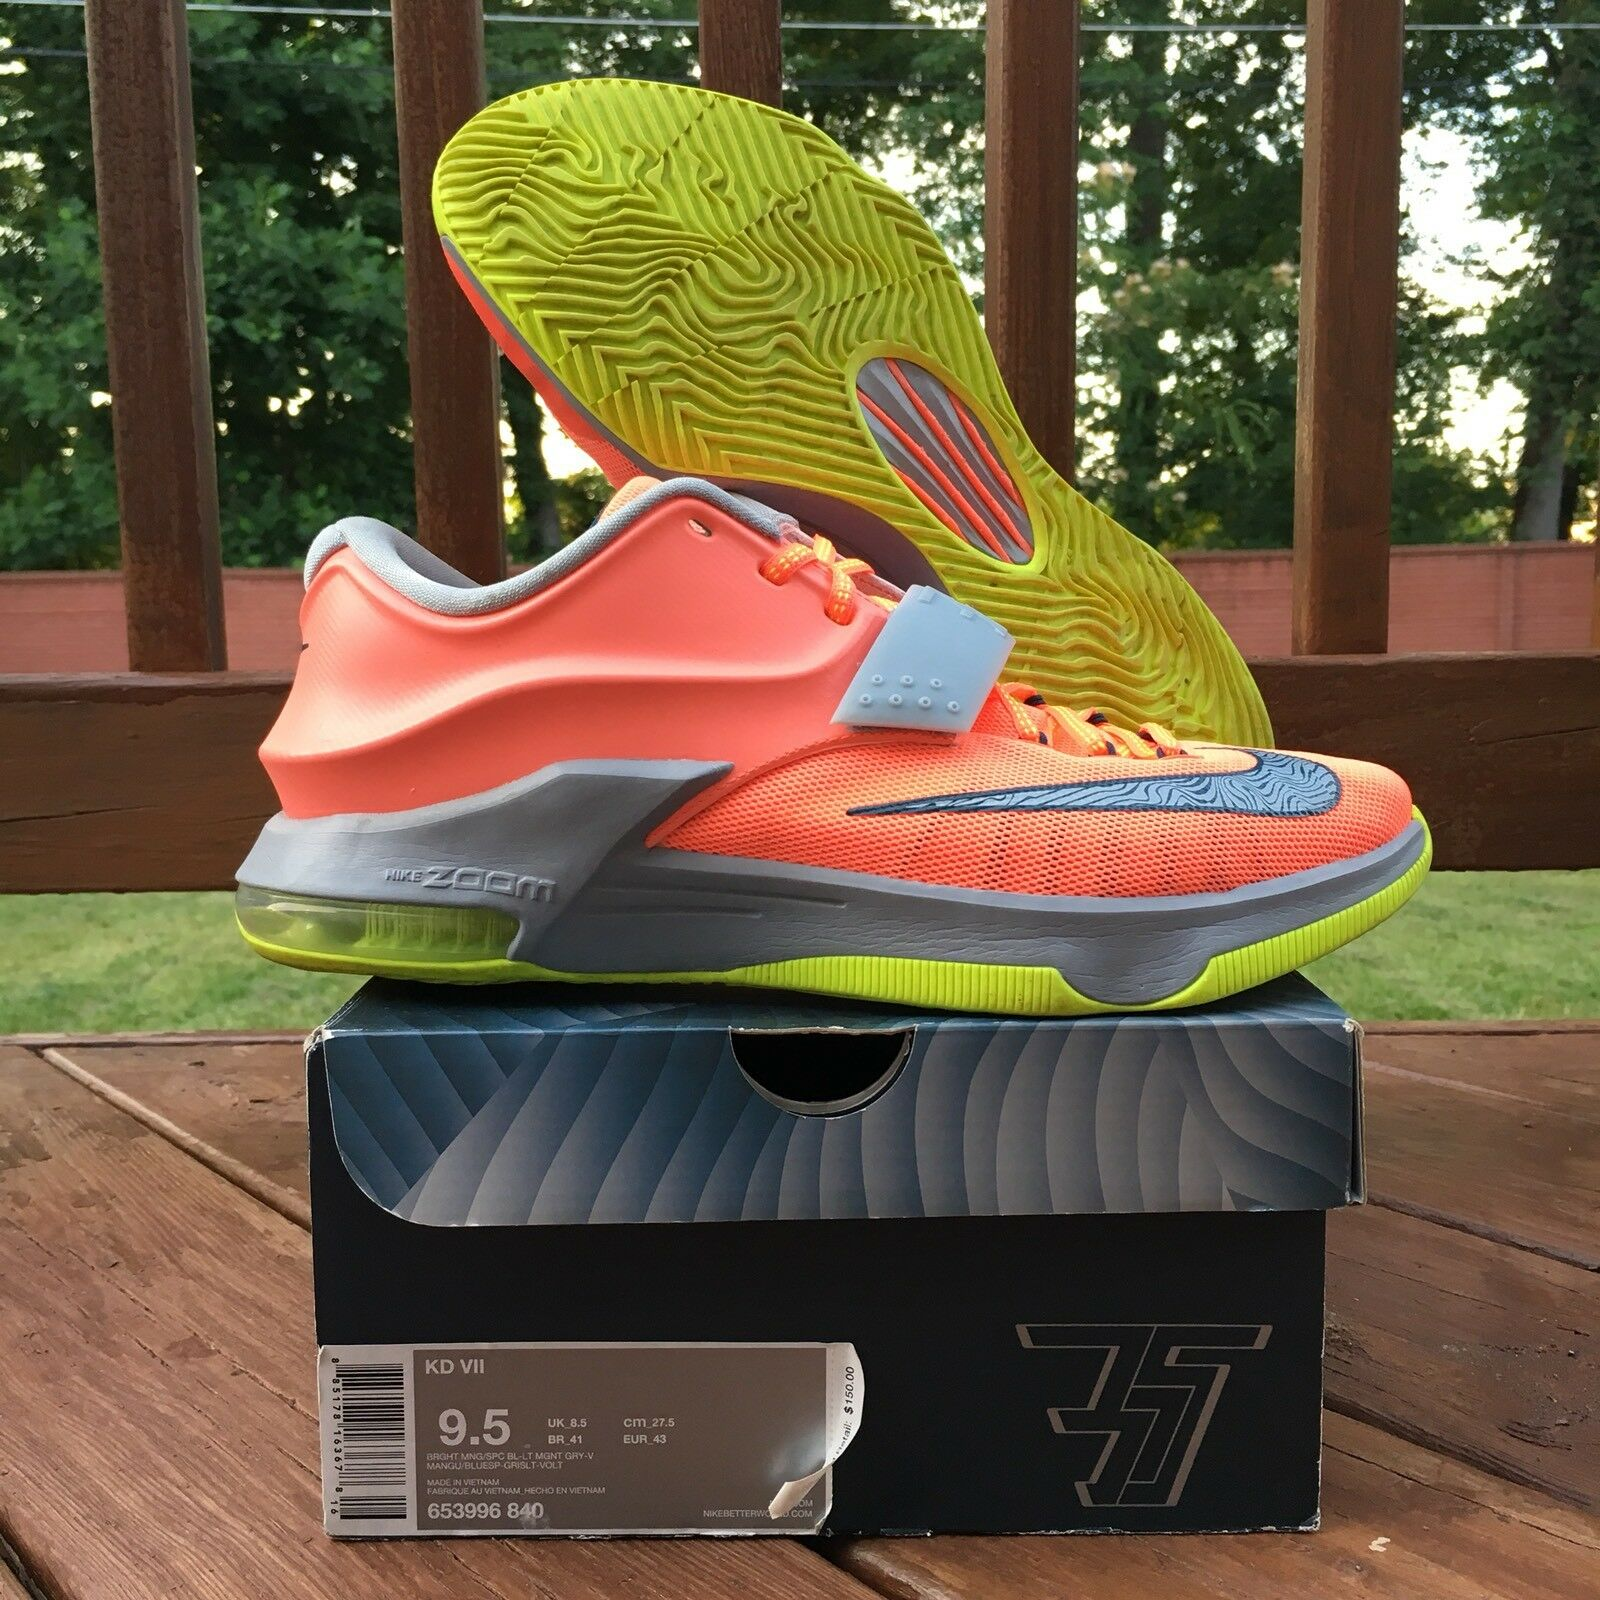 Brand discount Nike Kevin Durant KD7 Bright Mango 653996-840 Men 9.5 Basketball NBA Warriors